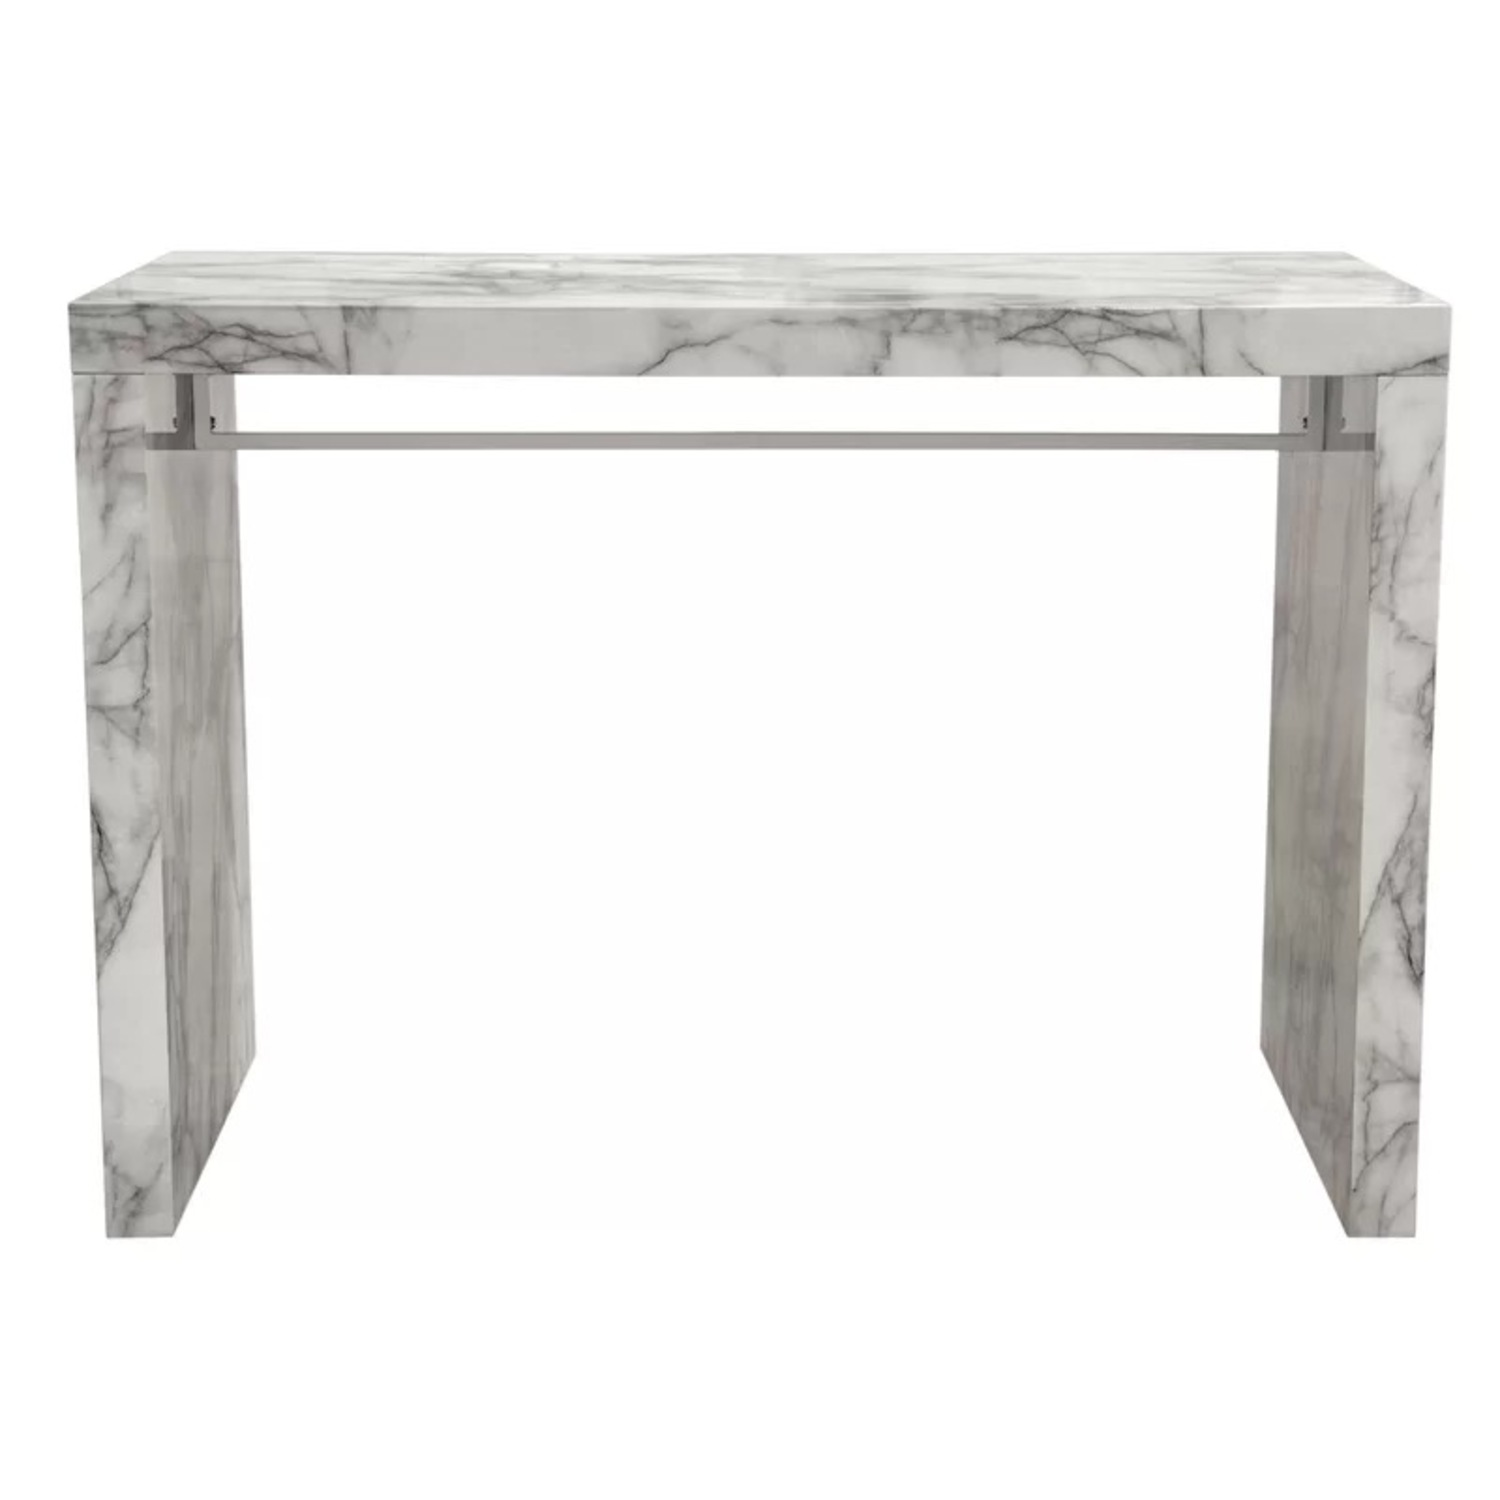 Icon Faux Marble Waterfall Bar Height Table - image-1